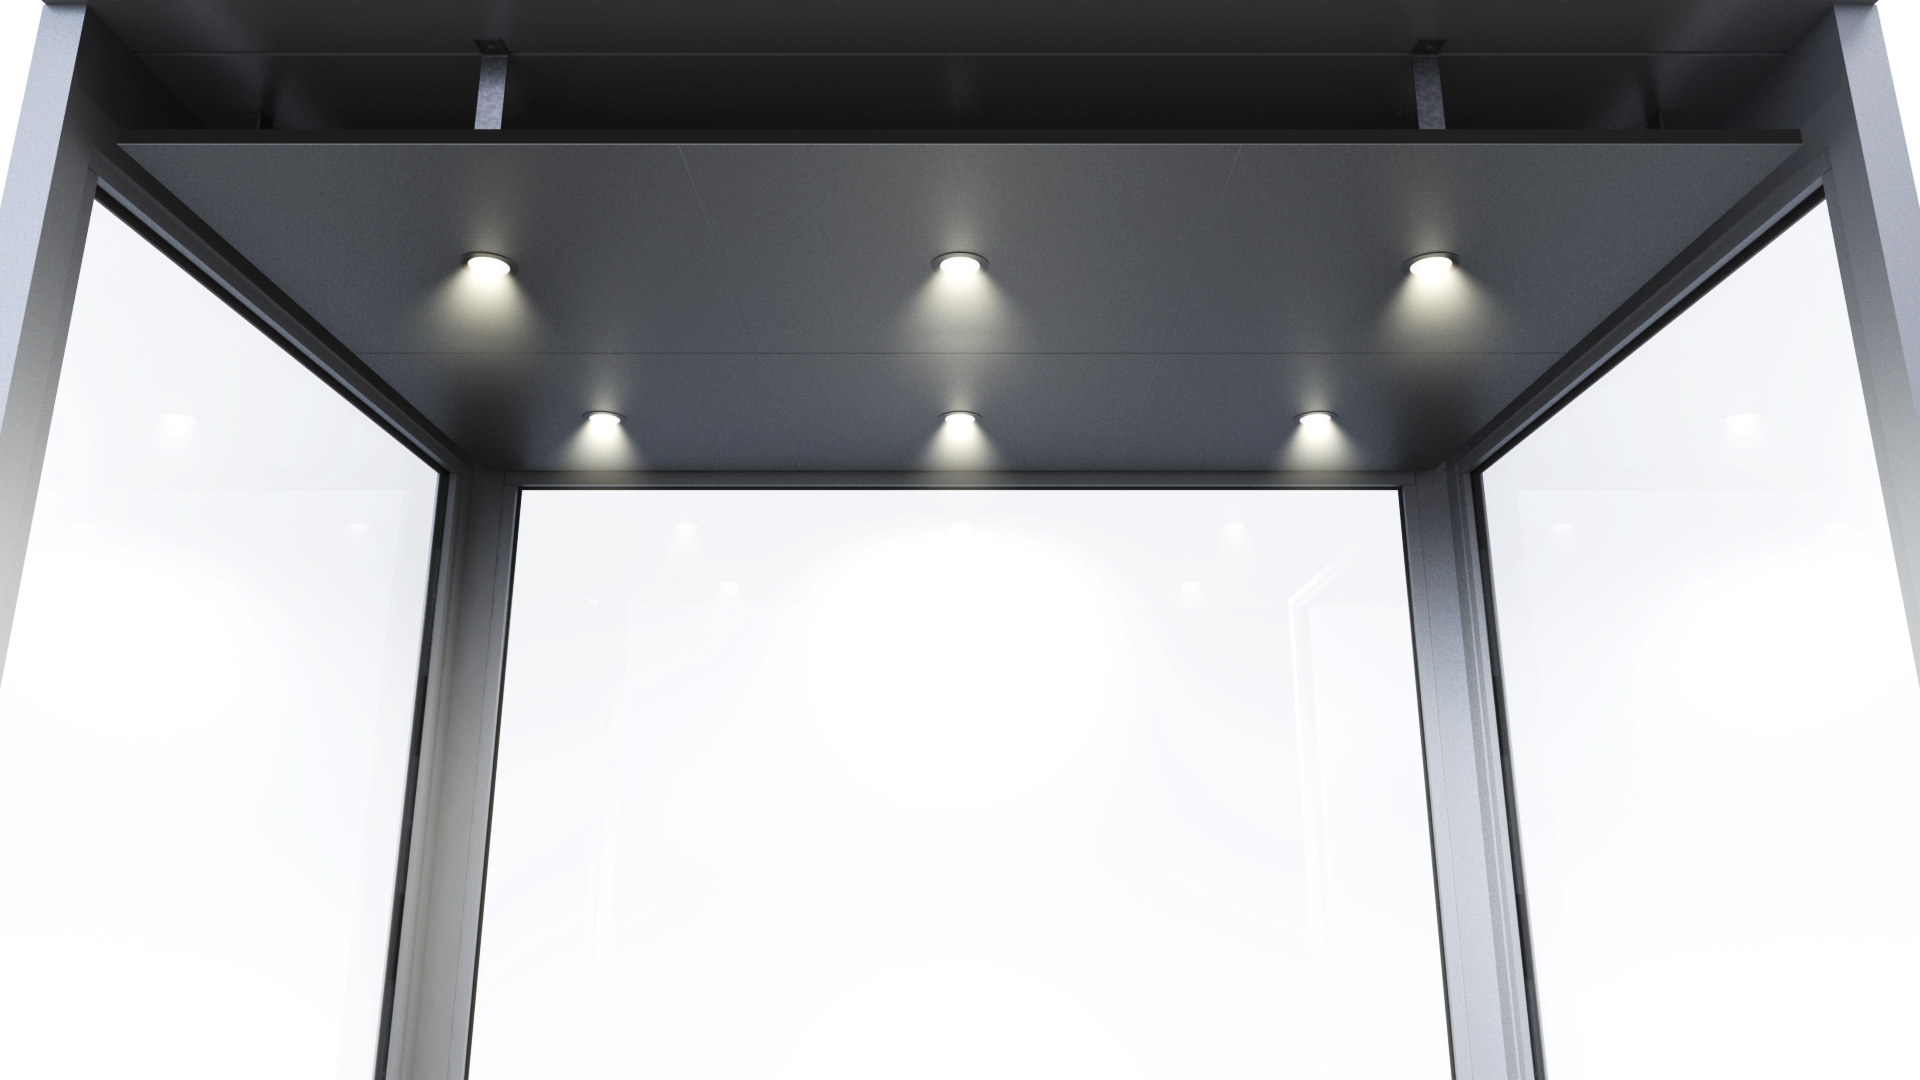 CE-1520 Ceiling View